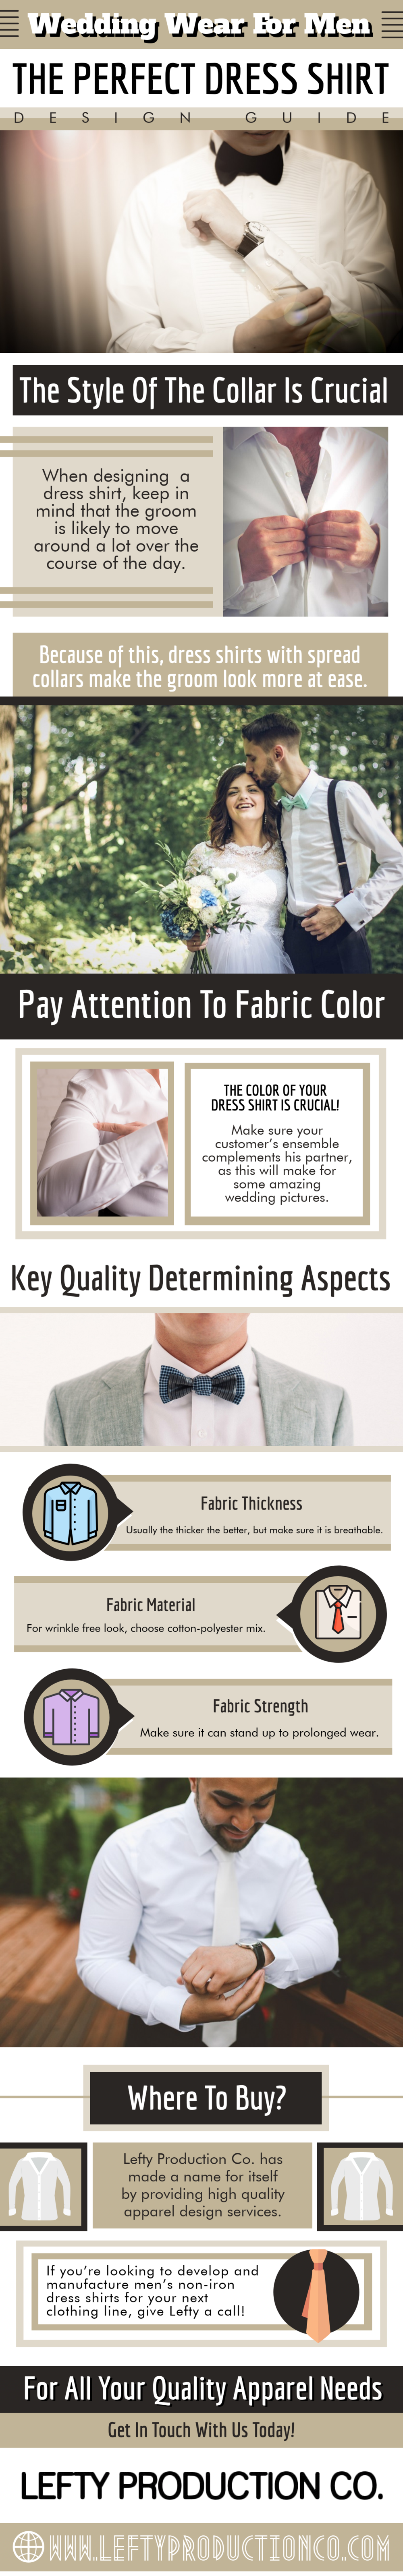 THE PERFECT DRESS SHIRT DESIGN GUIDE